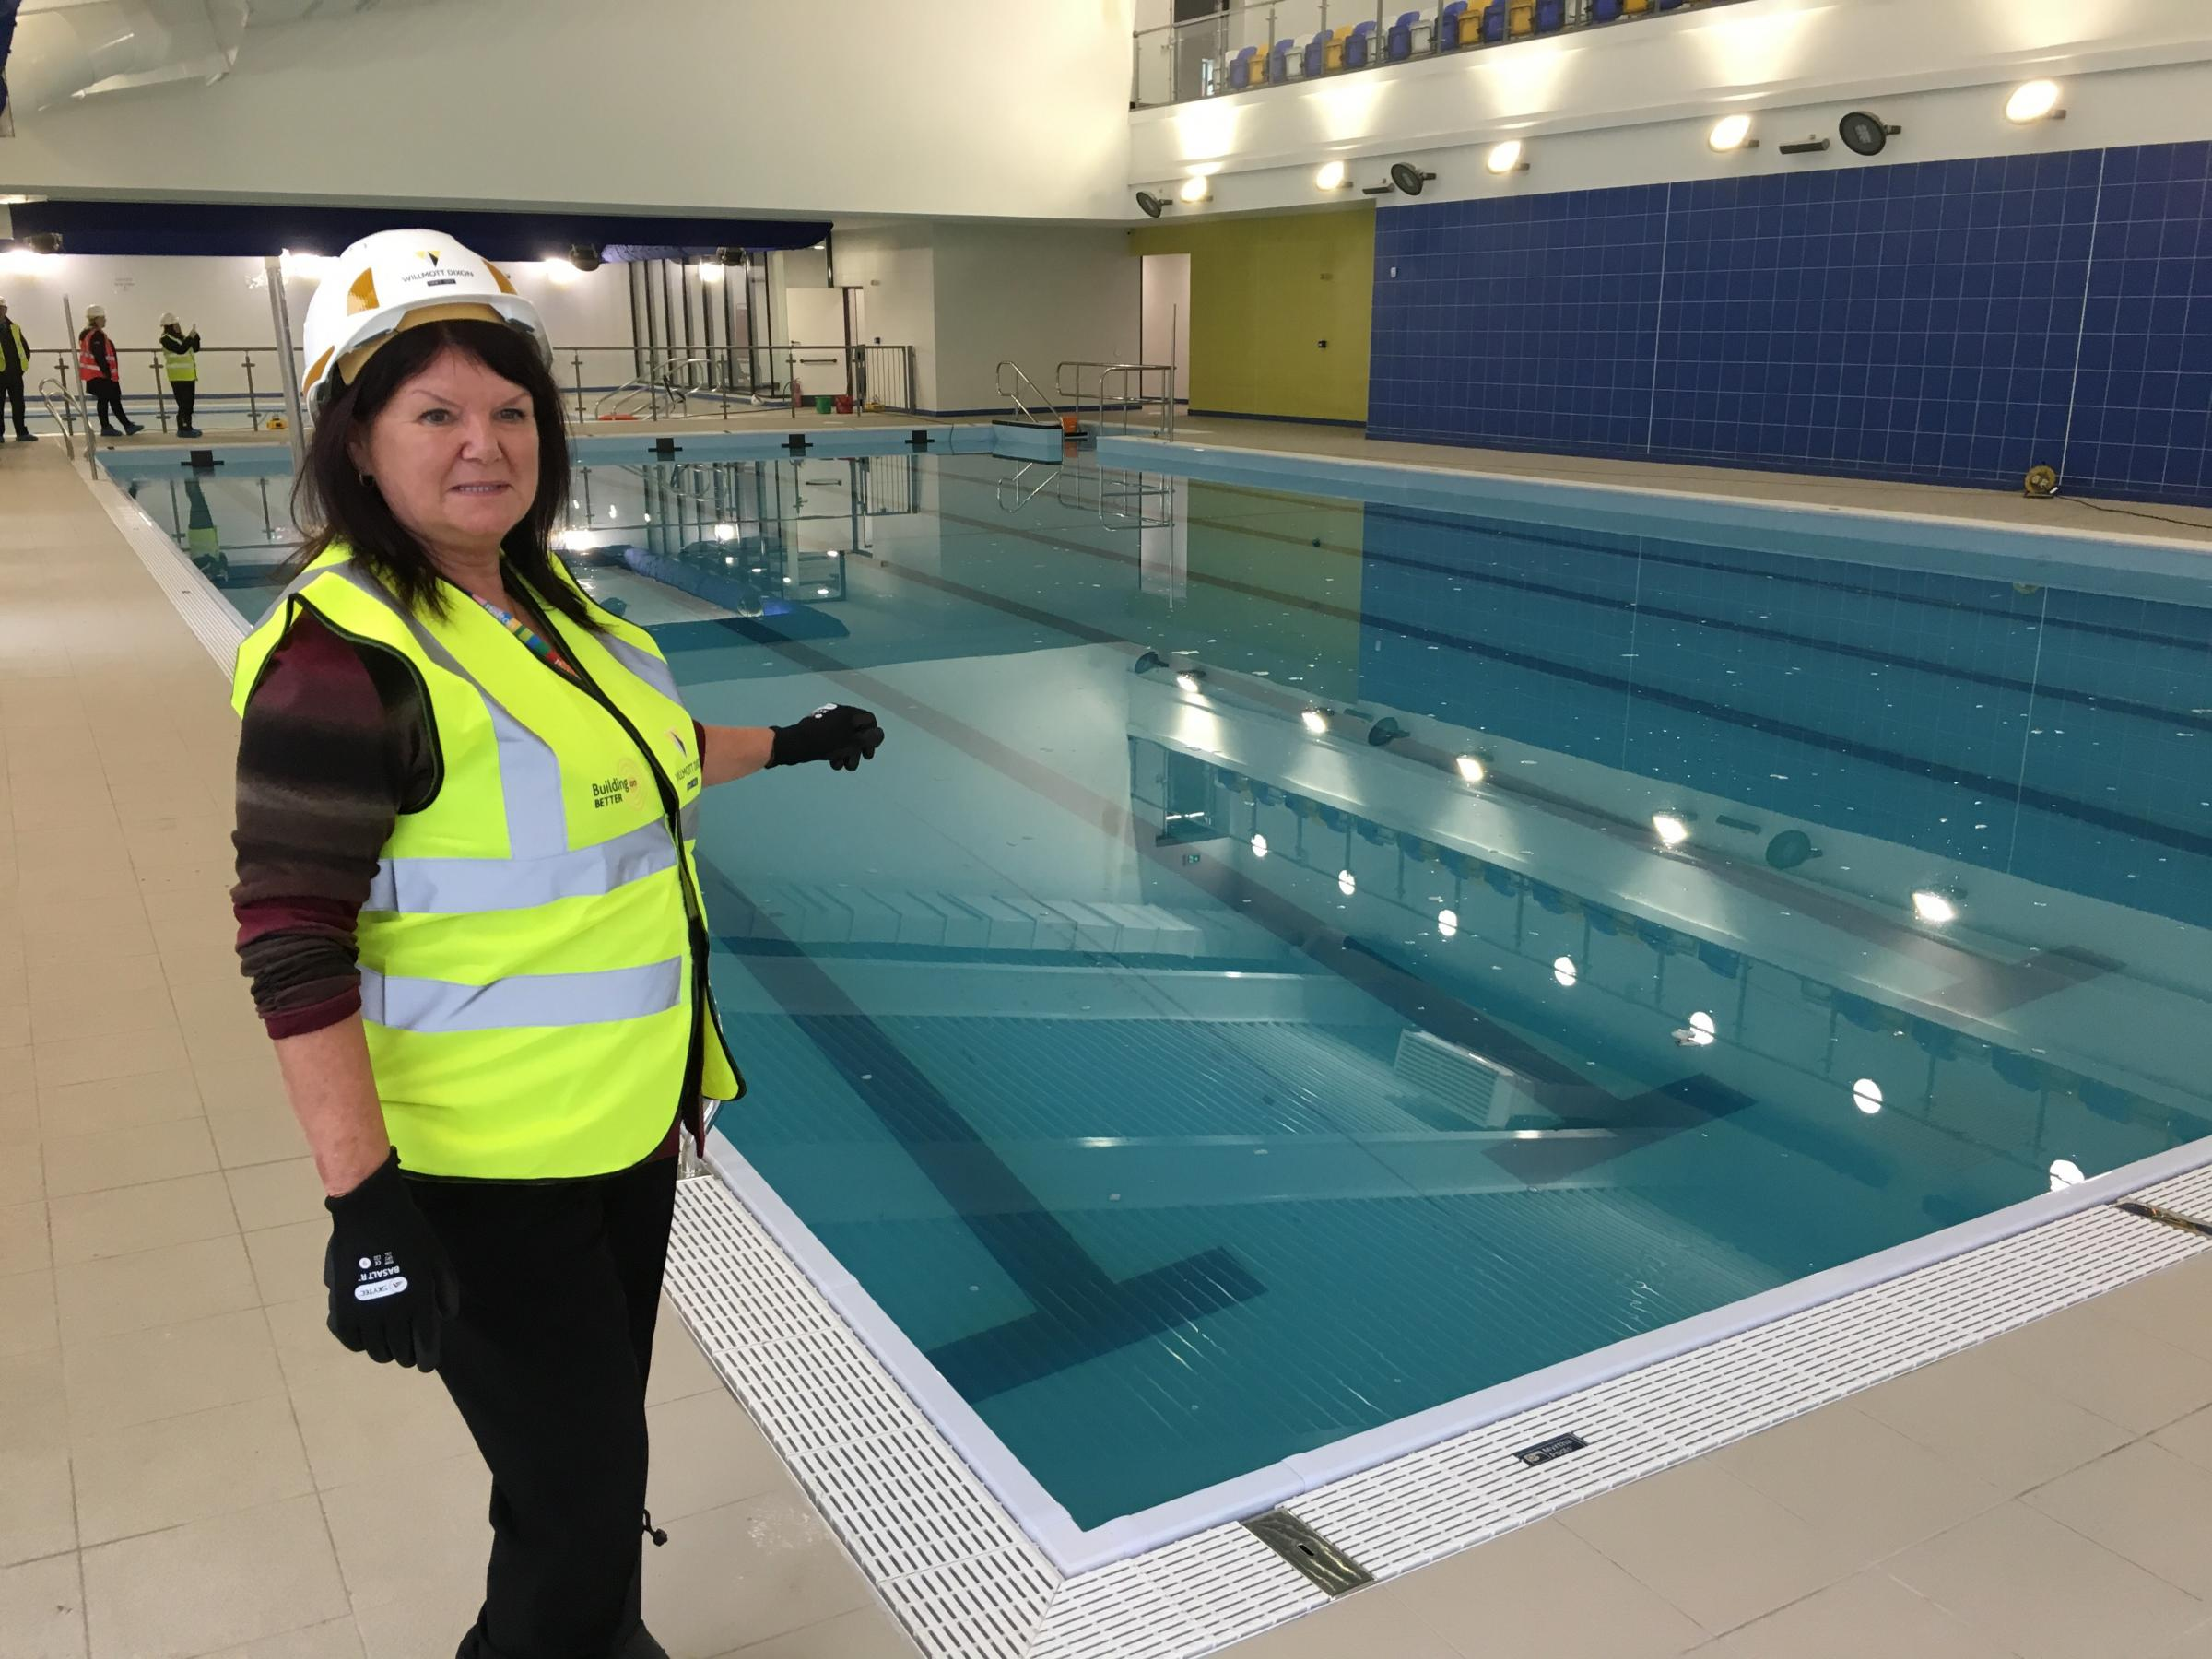 TOUR: First look at the nearly-completed Horwich Leisure Centre (Cllr Ann Cunliffe checks out the pool)